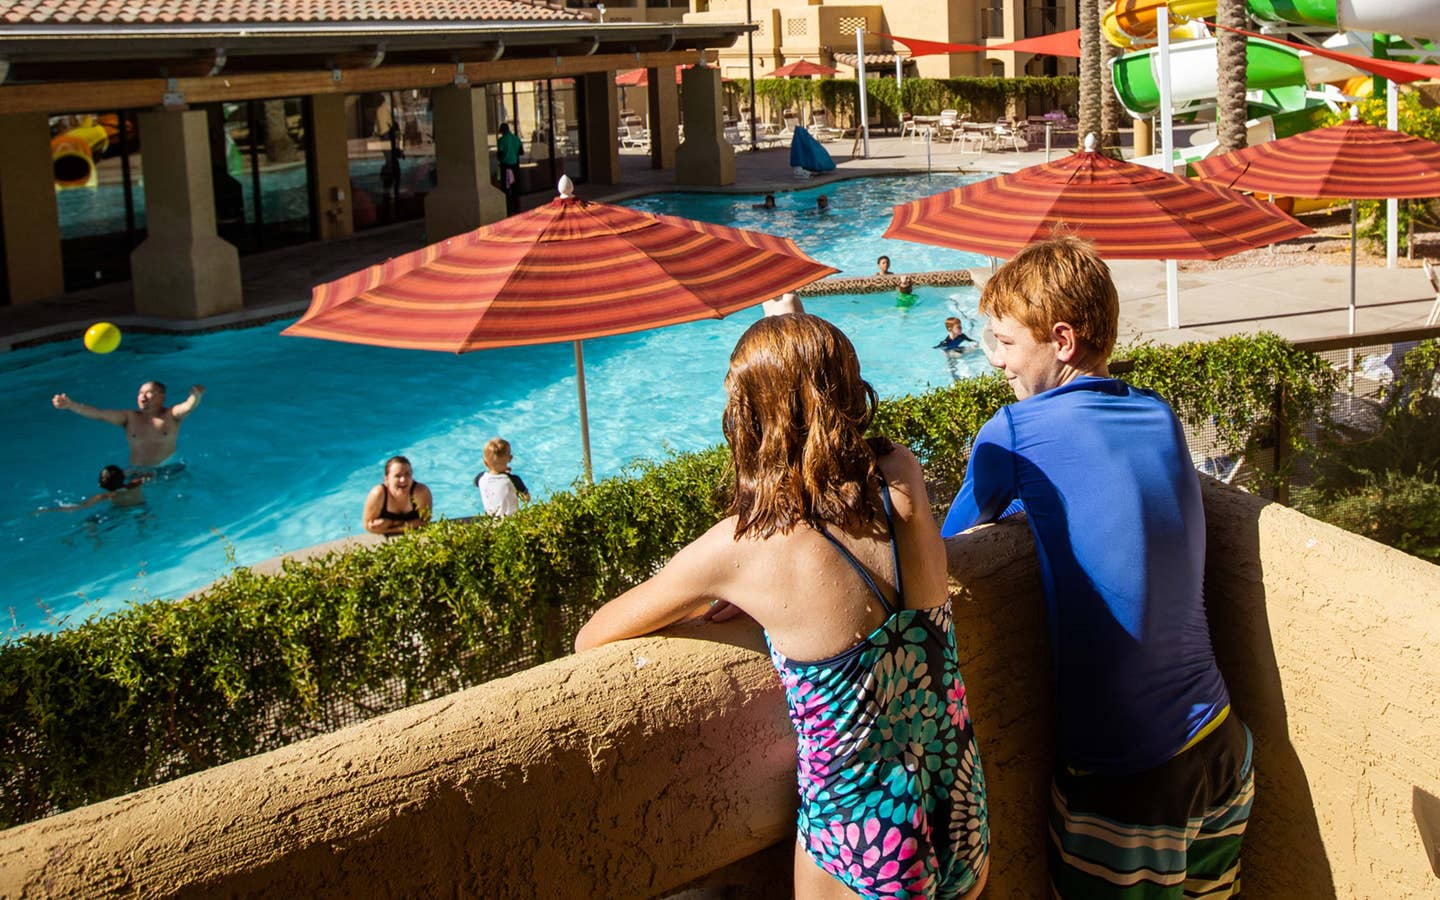 Two kids looking at pool and waterslide from balcony at Scottsdale Resort in Arizona.